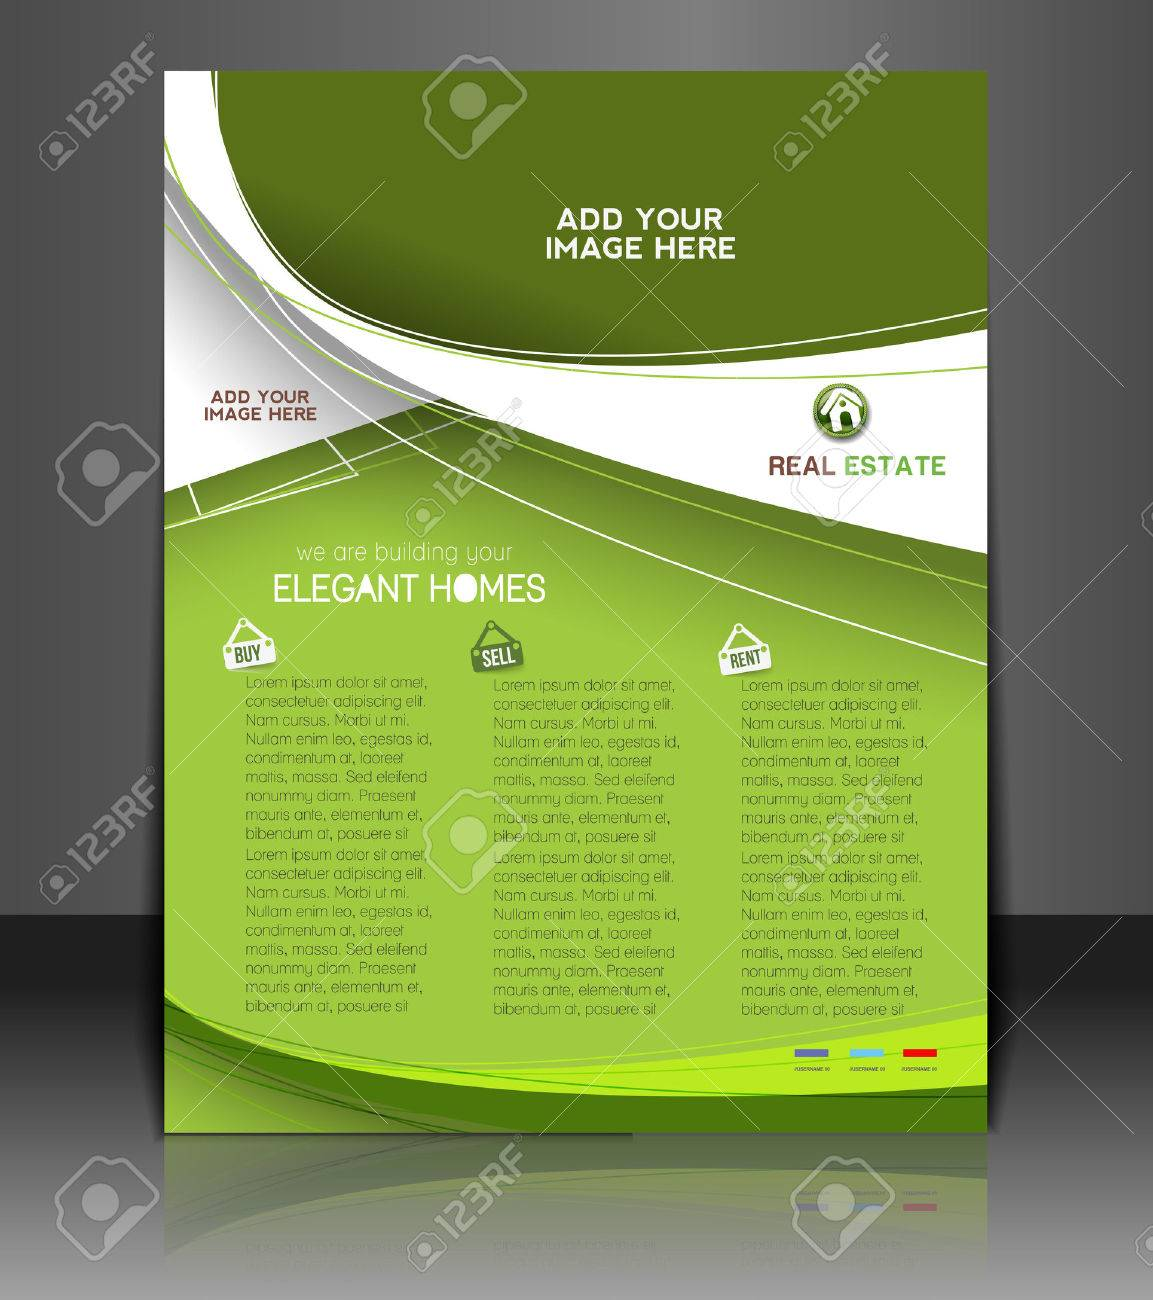 real estate agent flyer poster template design royalty real estate agent flyer poster template design stock vector 28516679